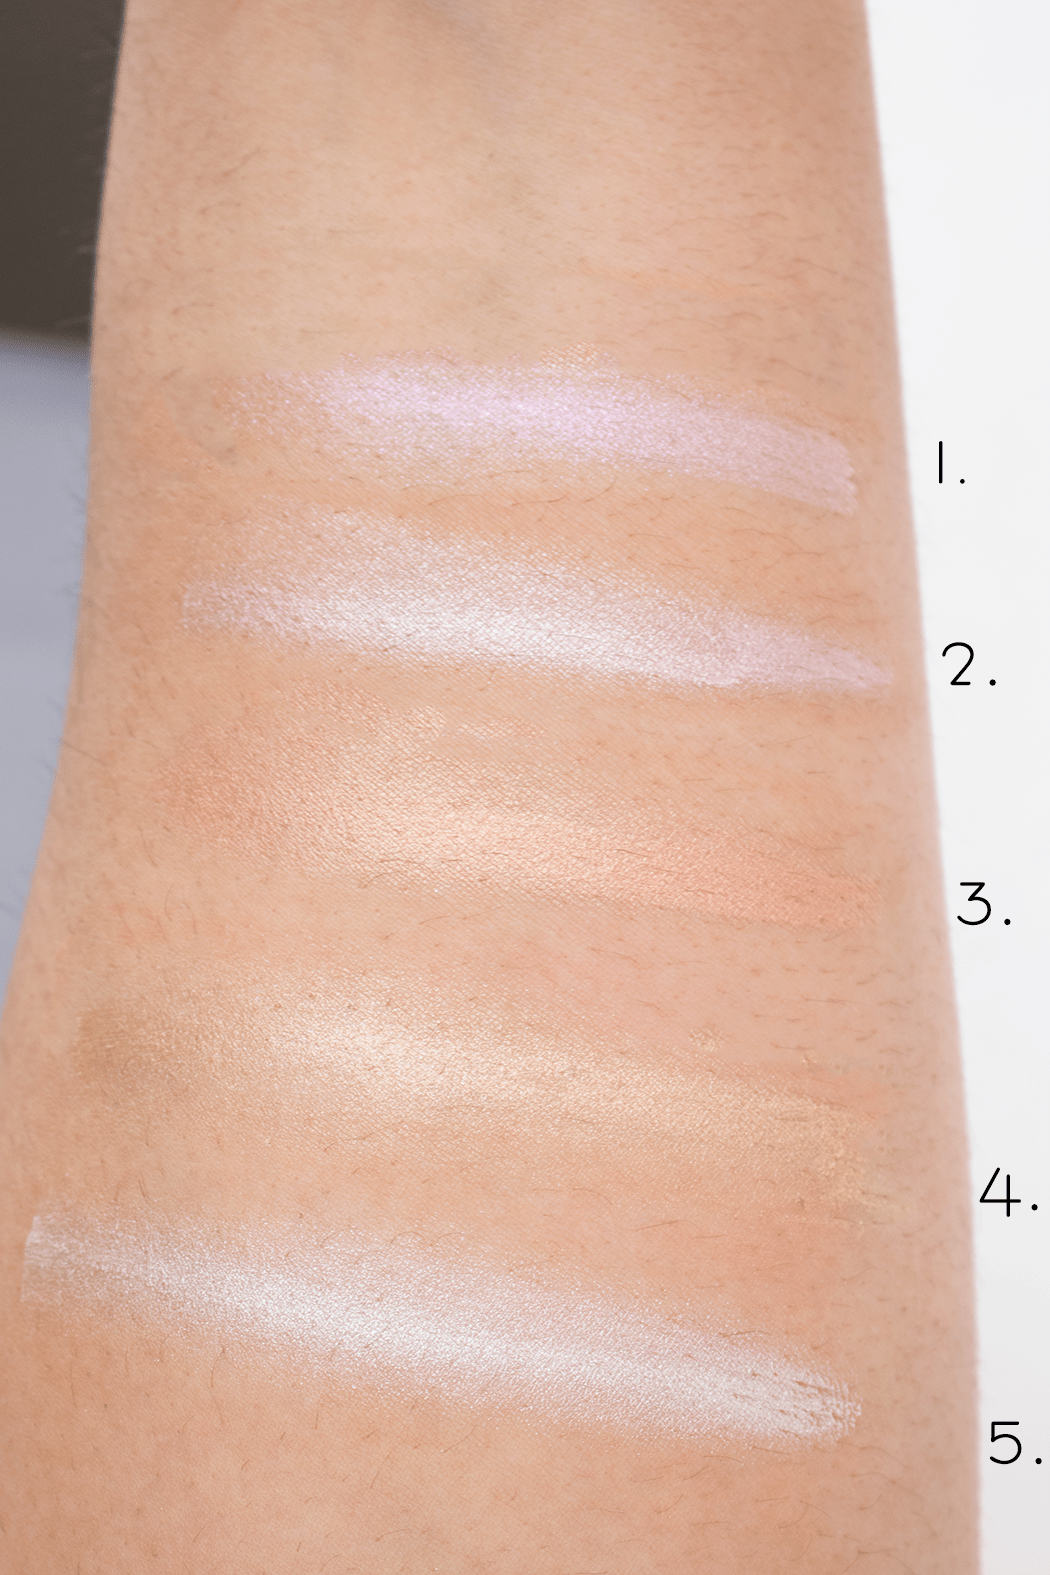 Jouer Mermaid Glow Palette swatches   1. Crystal 2. Seashell 3. Champagne 4. Tiare 5. Camellia